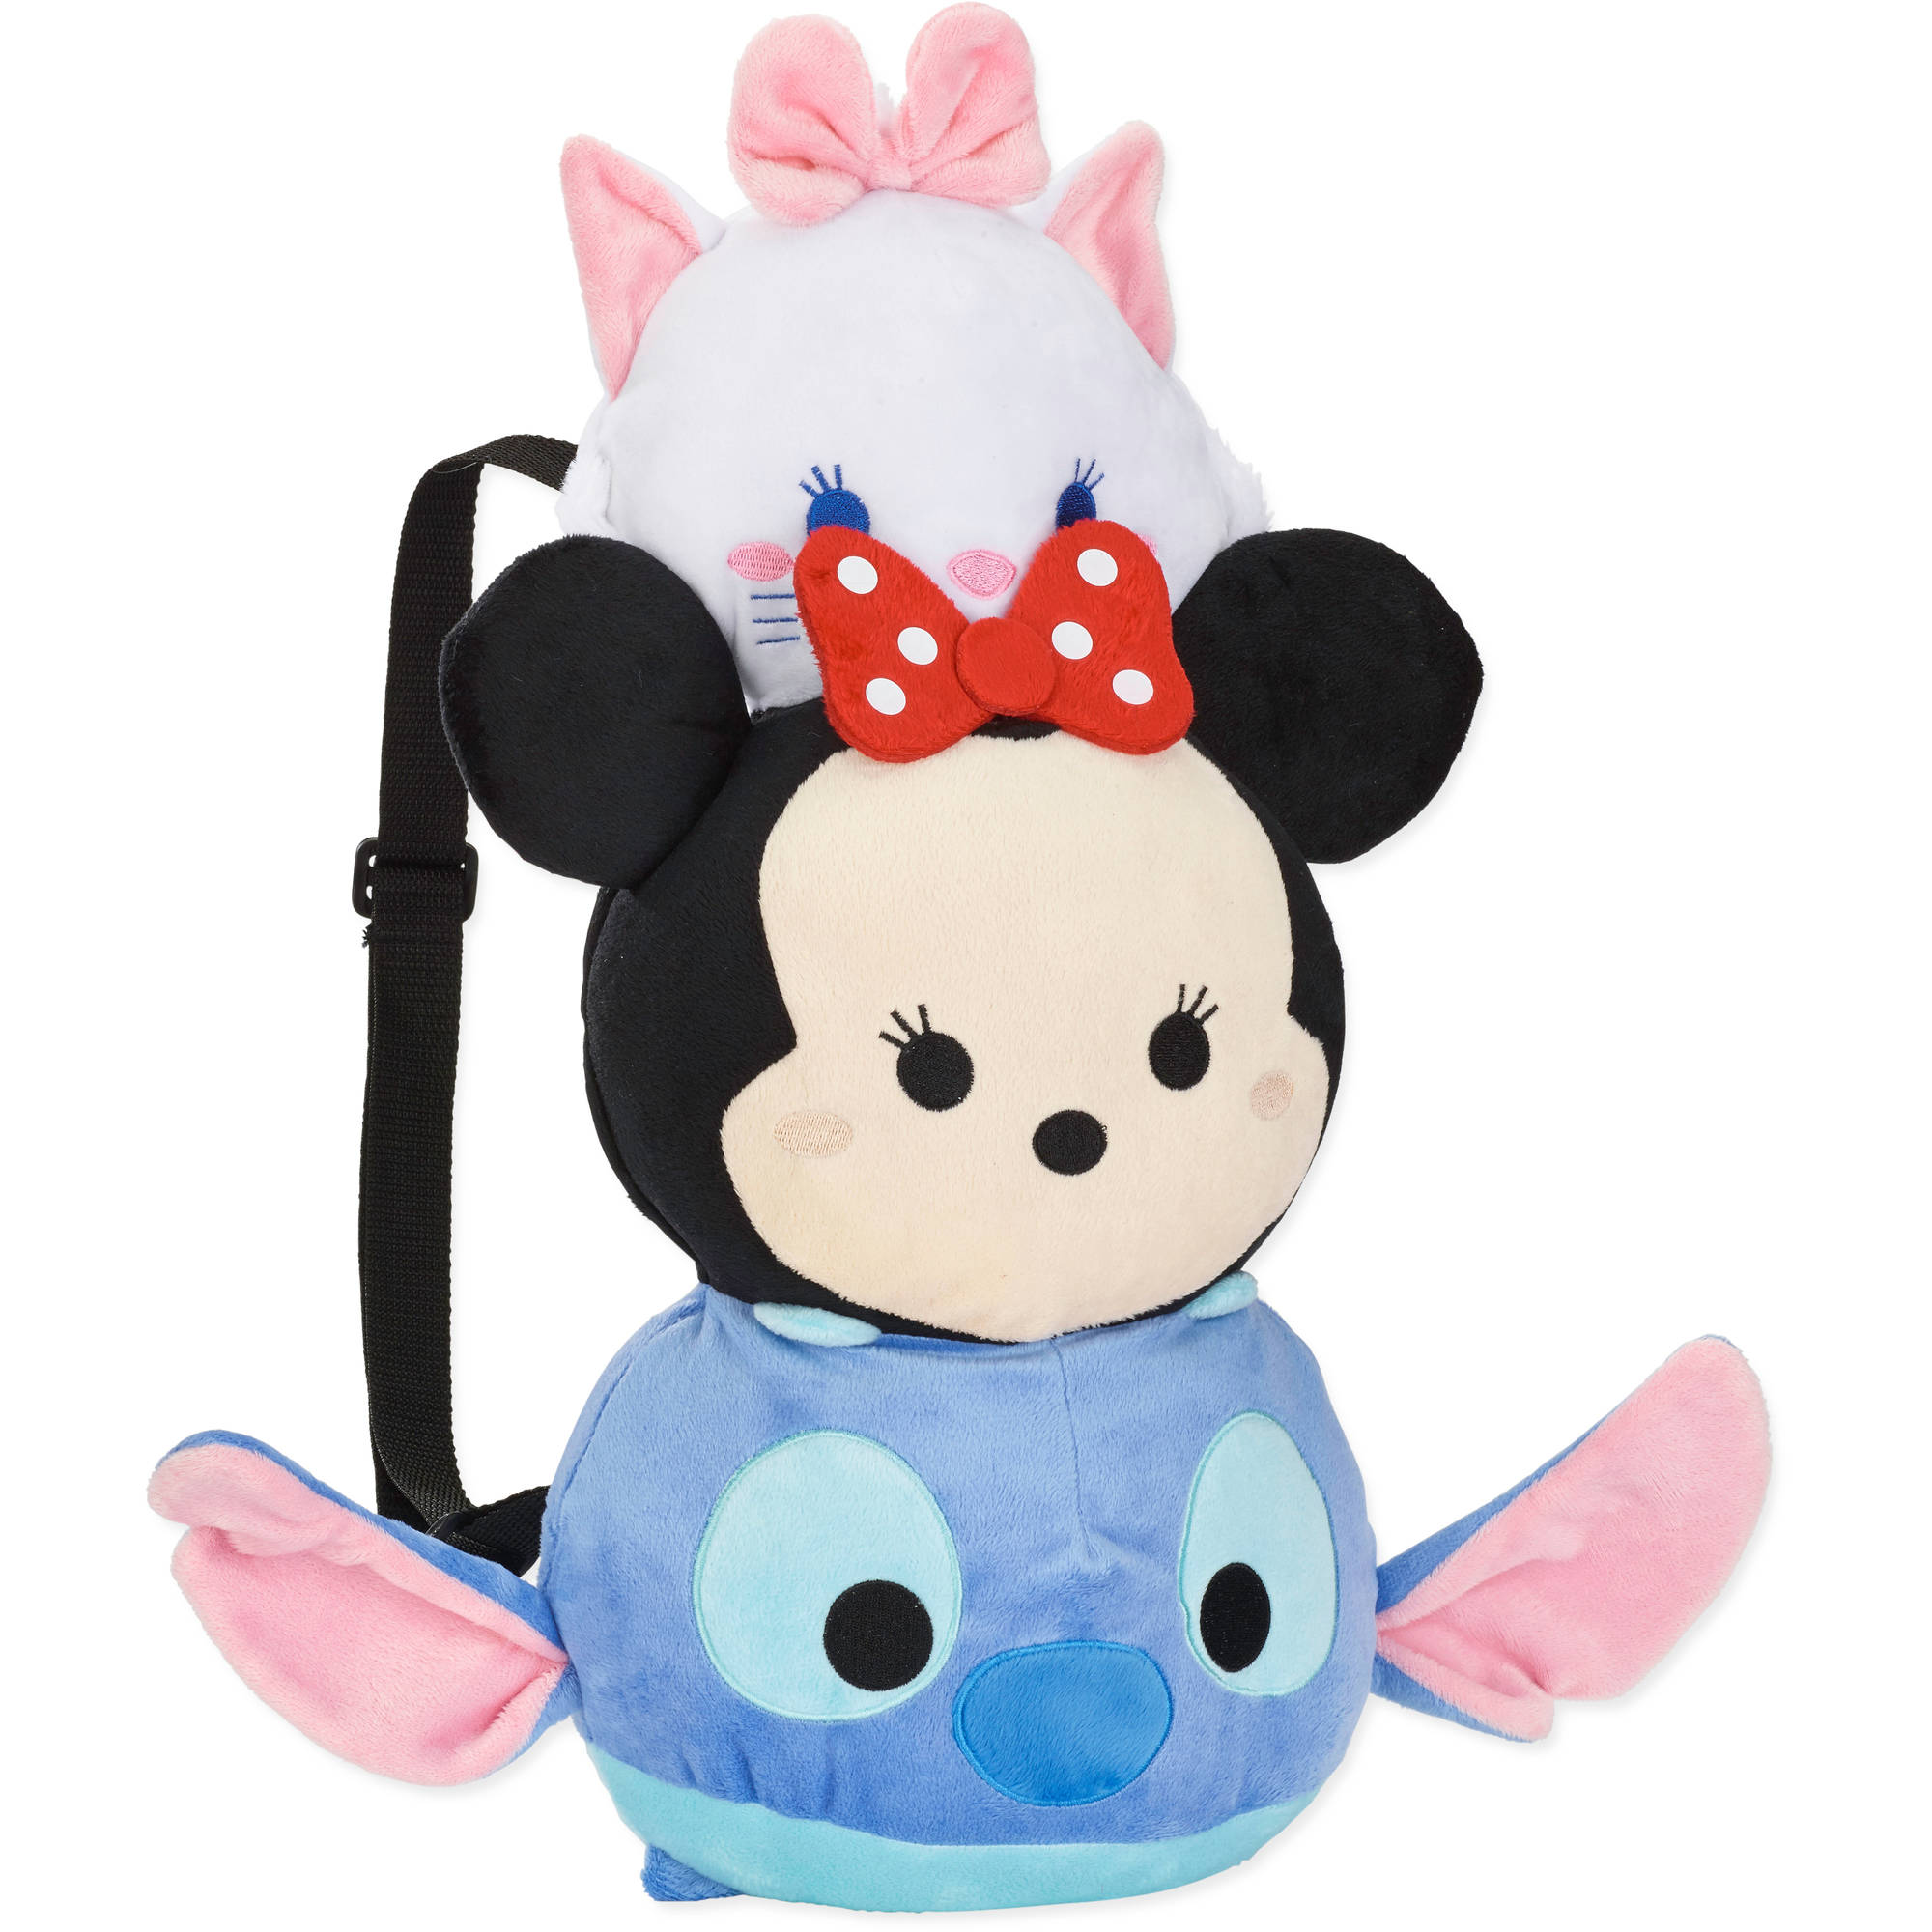 Disney Tsum Tsum Stitch Minnie Marie Plush Backpack